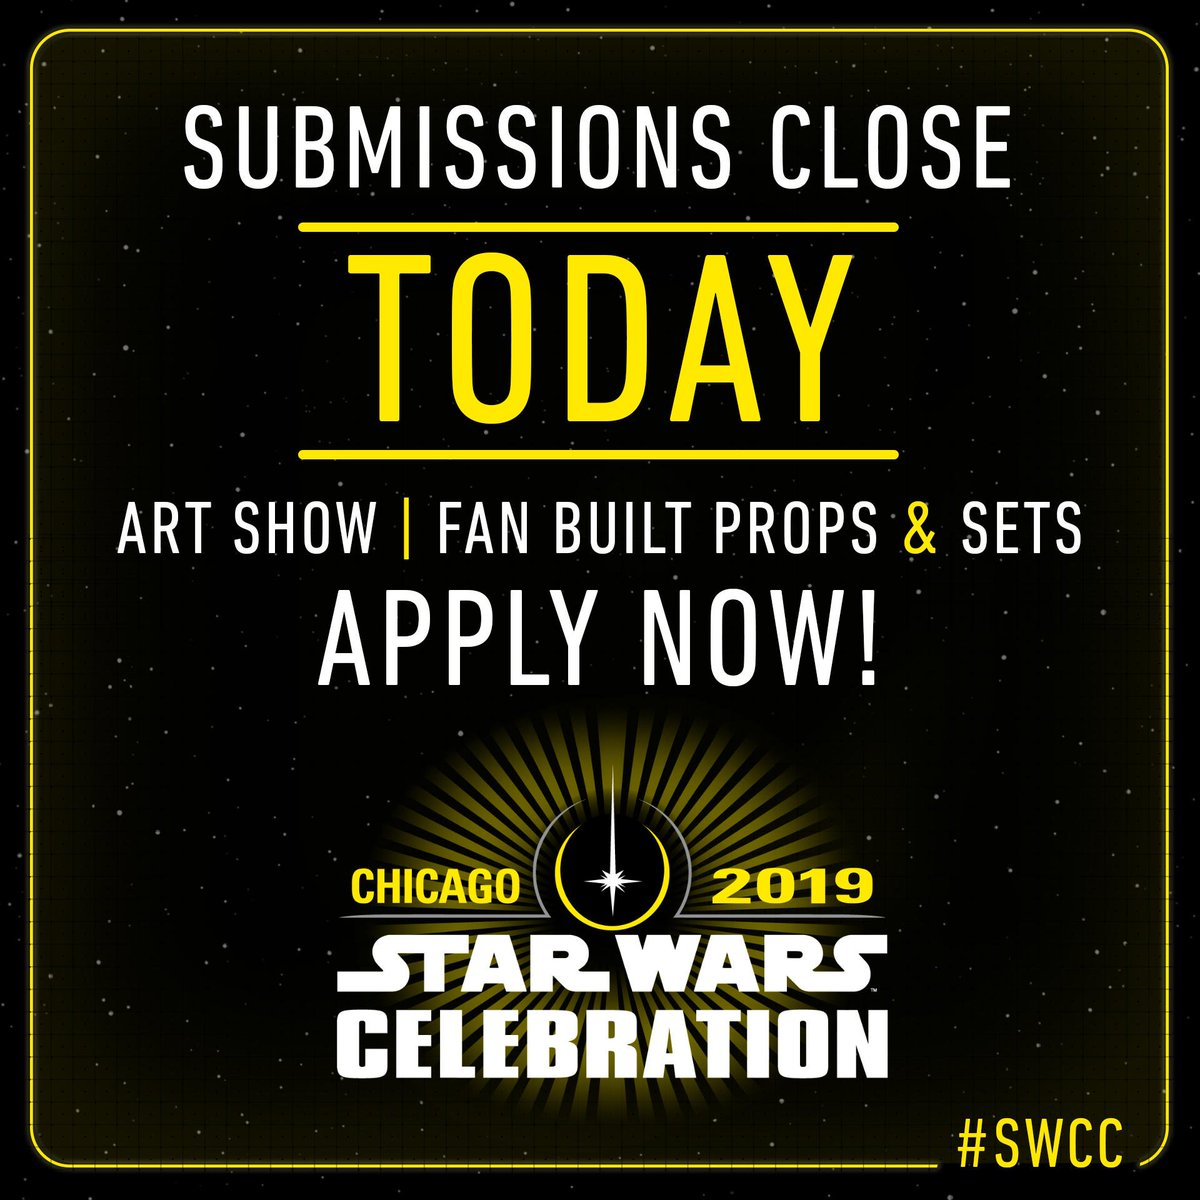 Alert all commands! Today is the final day to submit YOUR fan creations for #StarWarsCelebration. #SWCC  Art Show:  http:// strw.rs/6007DvE7W  &nbsp;    Props and Sets:  http:// strw.rs/6000DvEC6  &nbsp;  <br>http://pic.twitter.com/tmw8rBRFCl